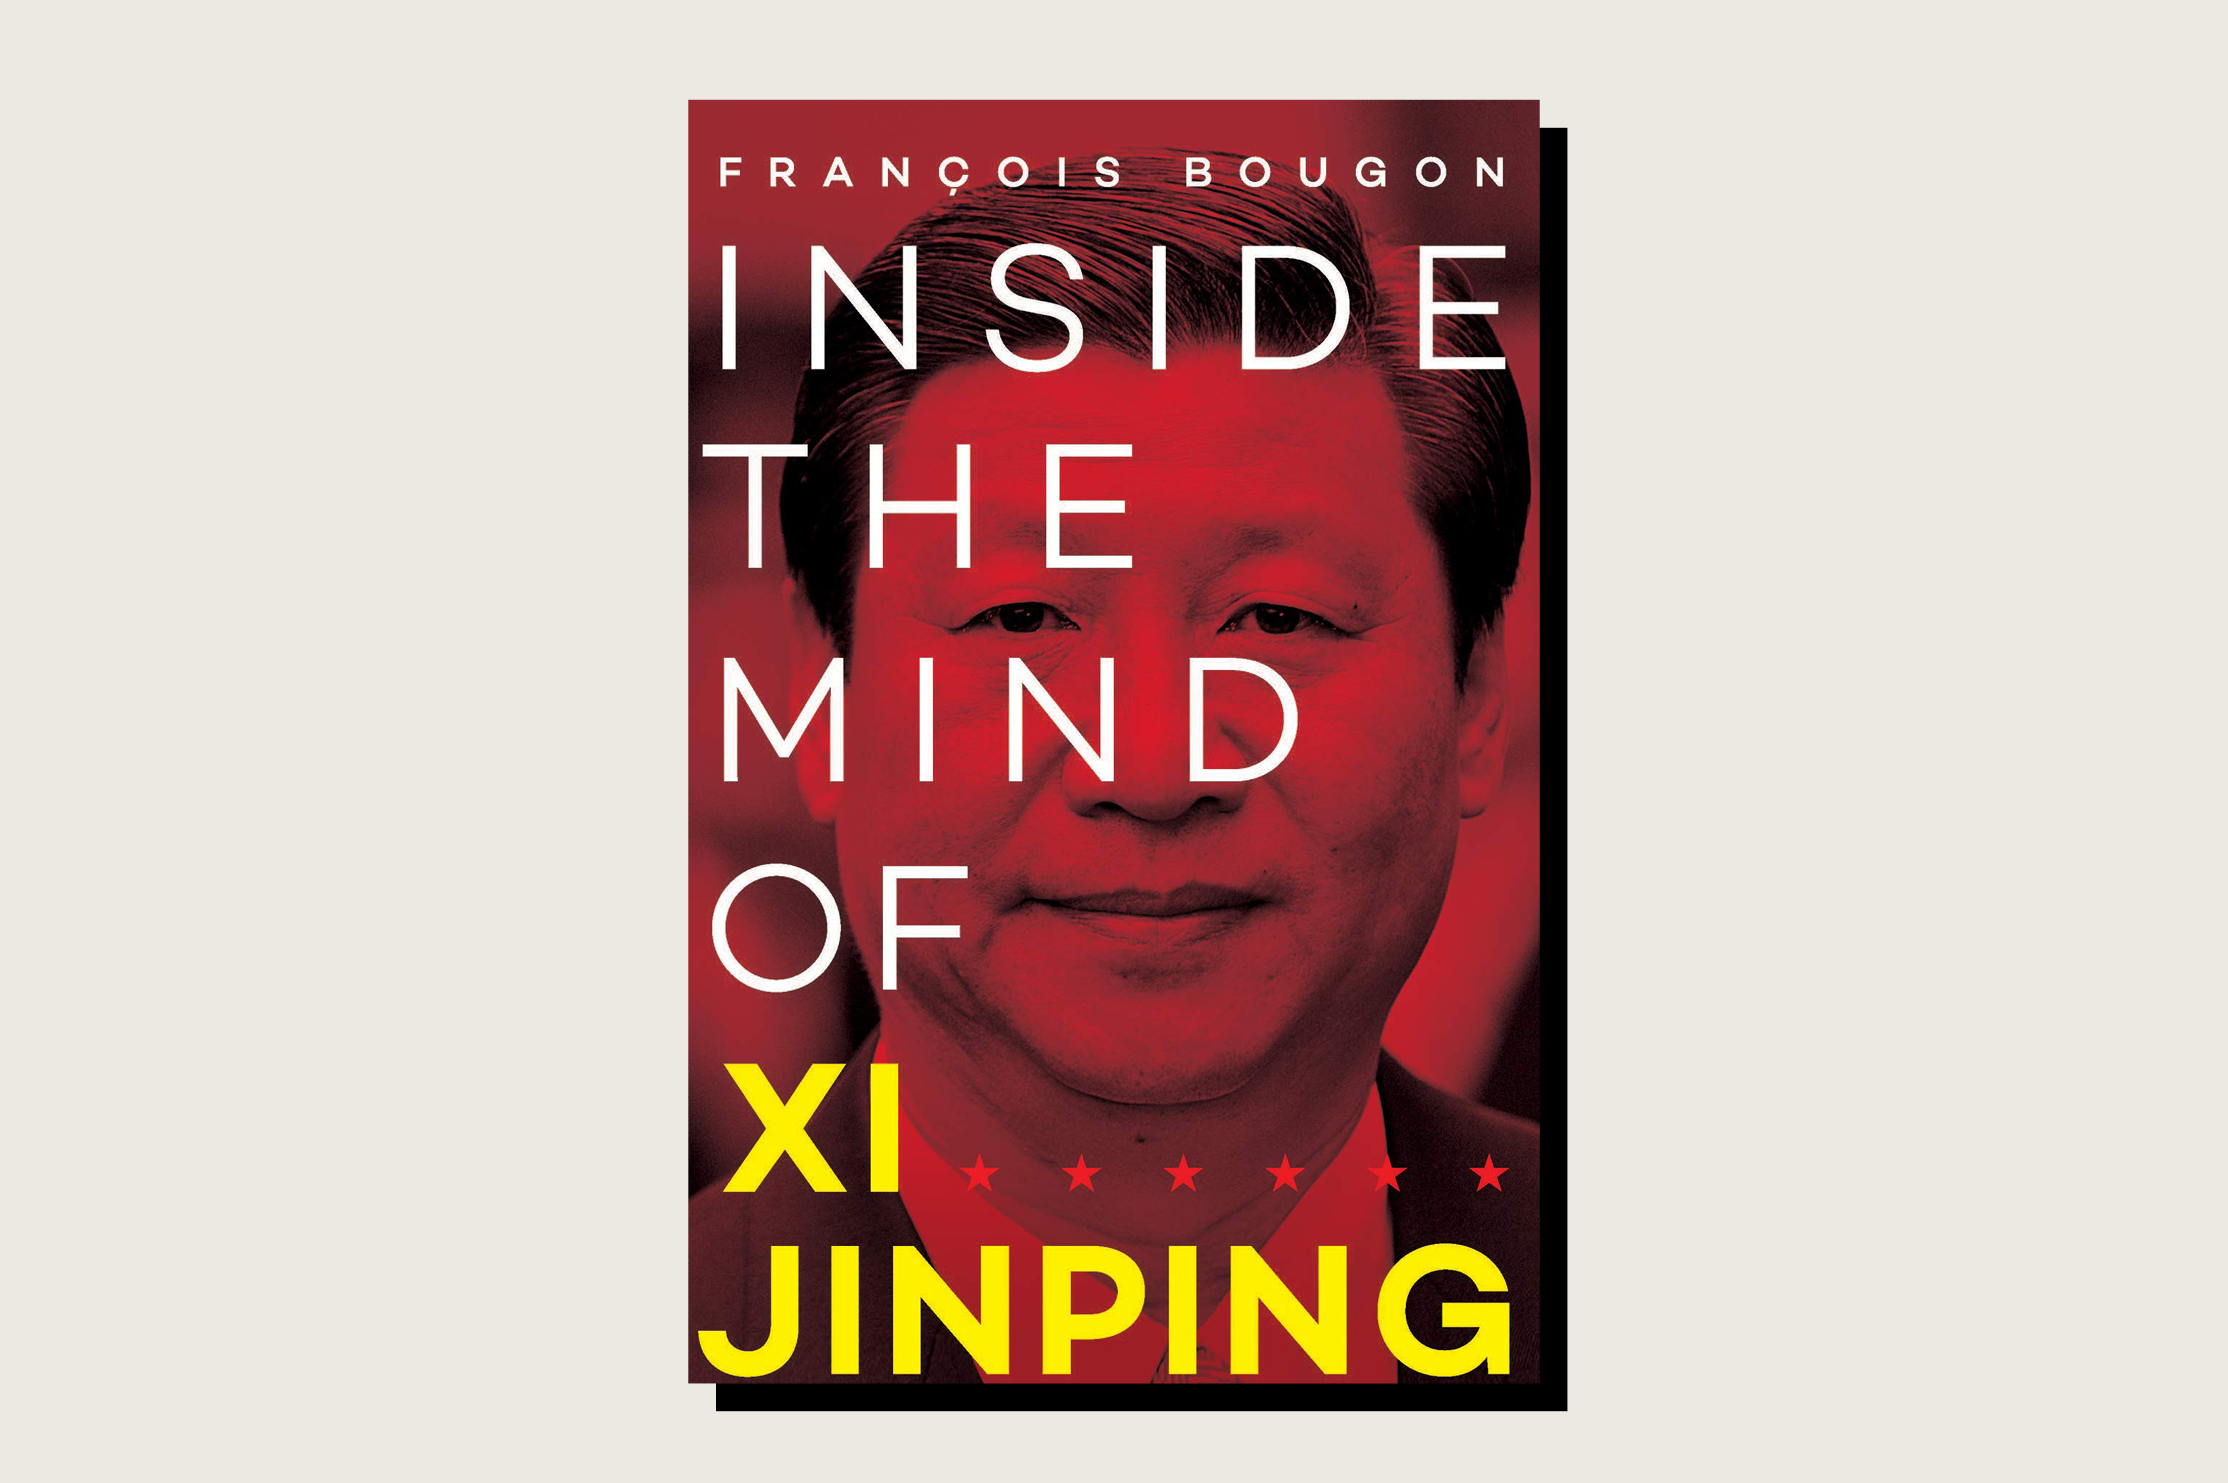 Inside the Mind of Xi Jinping, François Bougon, Trans. Vanessa Lee, Hurst, 232 pp., .95, September 2018